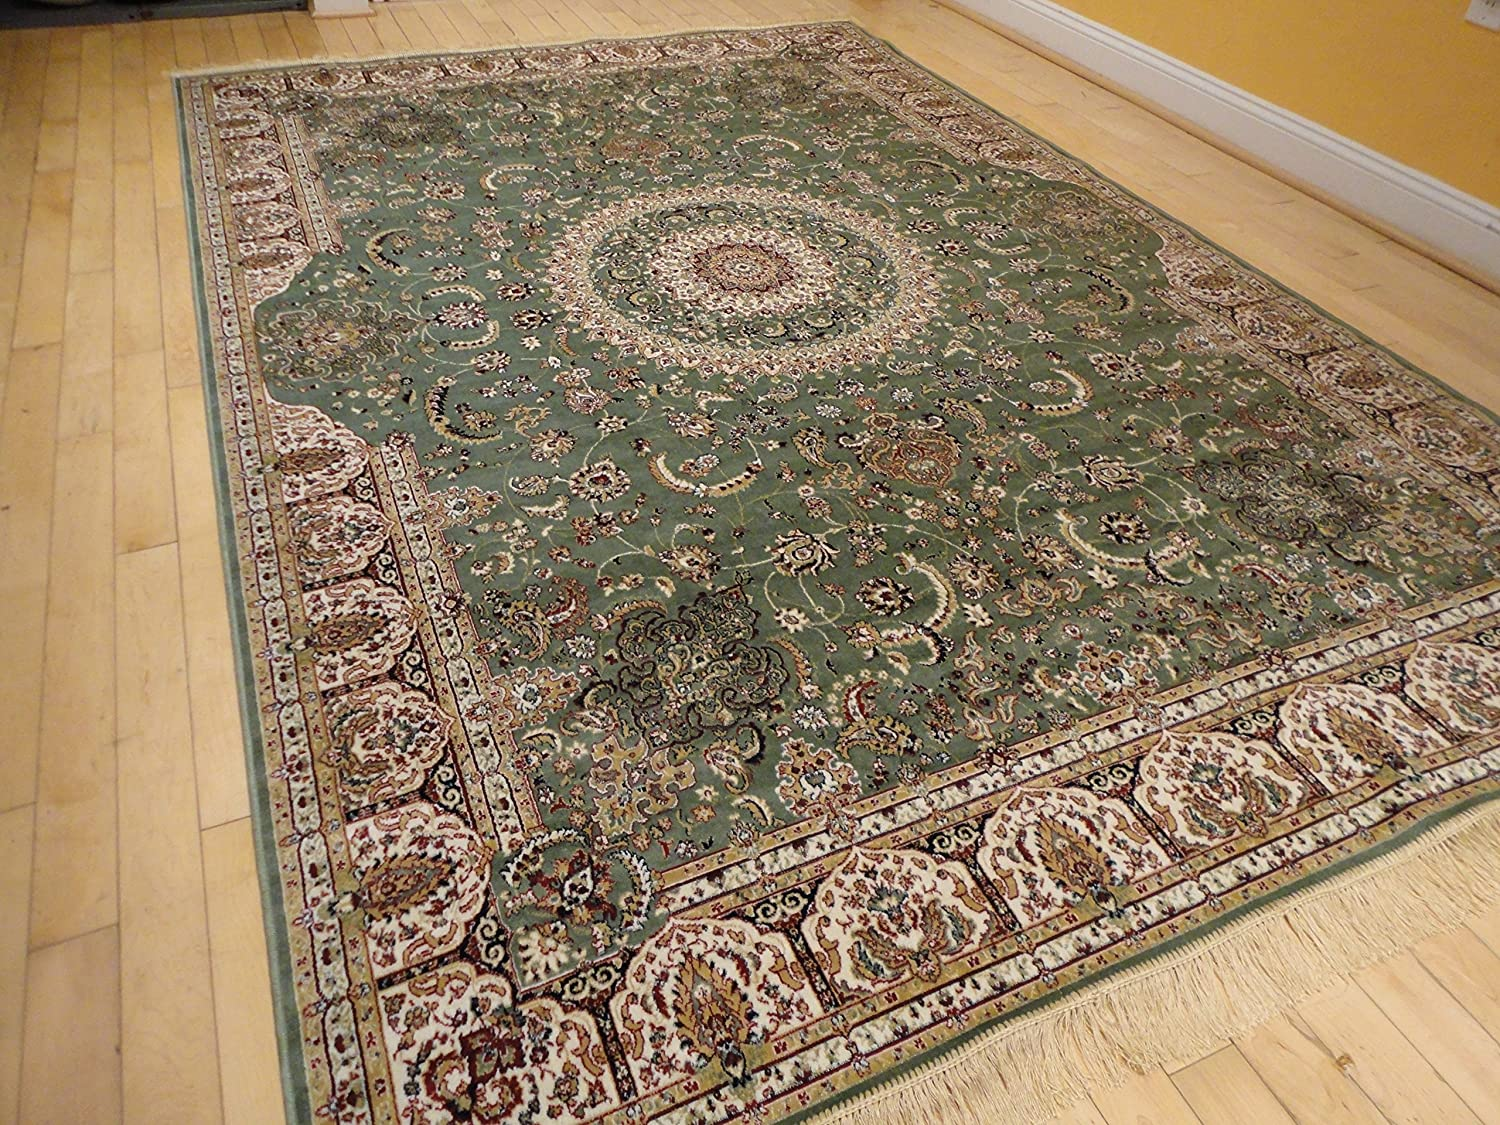 Amazon Stunning Green Silk Rug Persian Area Rugs Living Room 7x10 Dining Olive 6x9 Floral Shiny Soft Carpet Kitchen